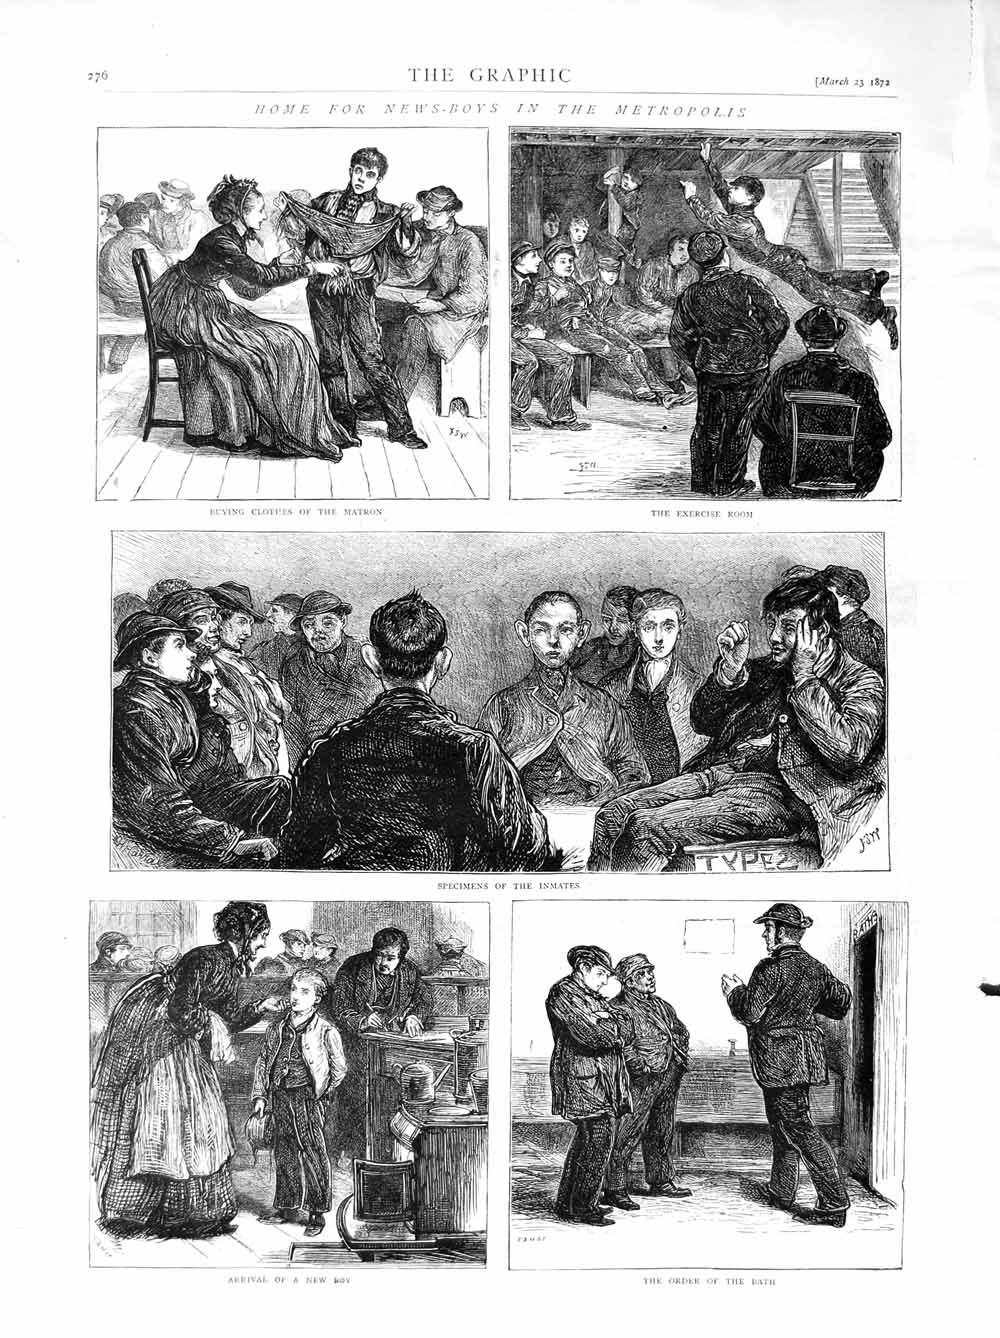 [Print 1872 Home News-Boys Metropolis Children Matron 276M105 Old Original]